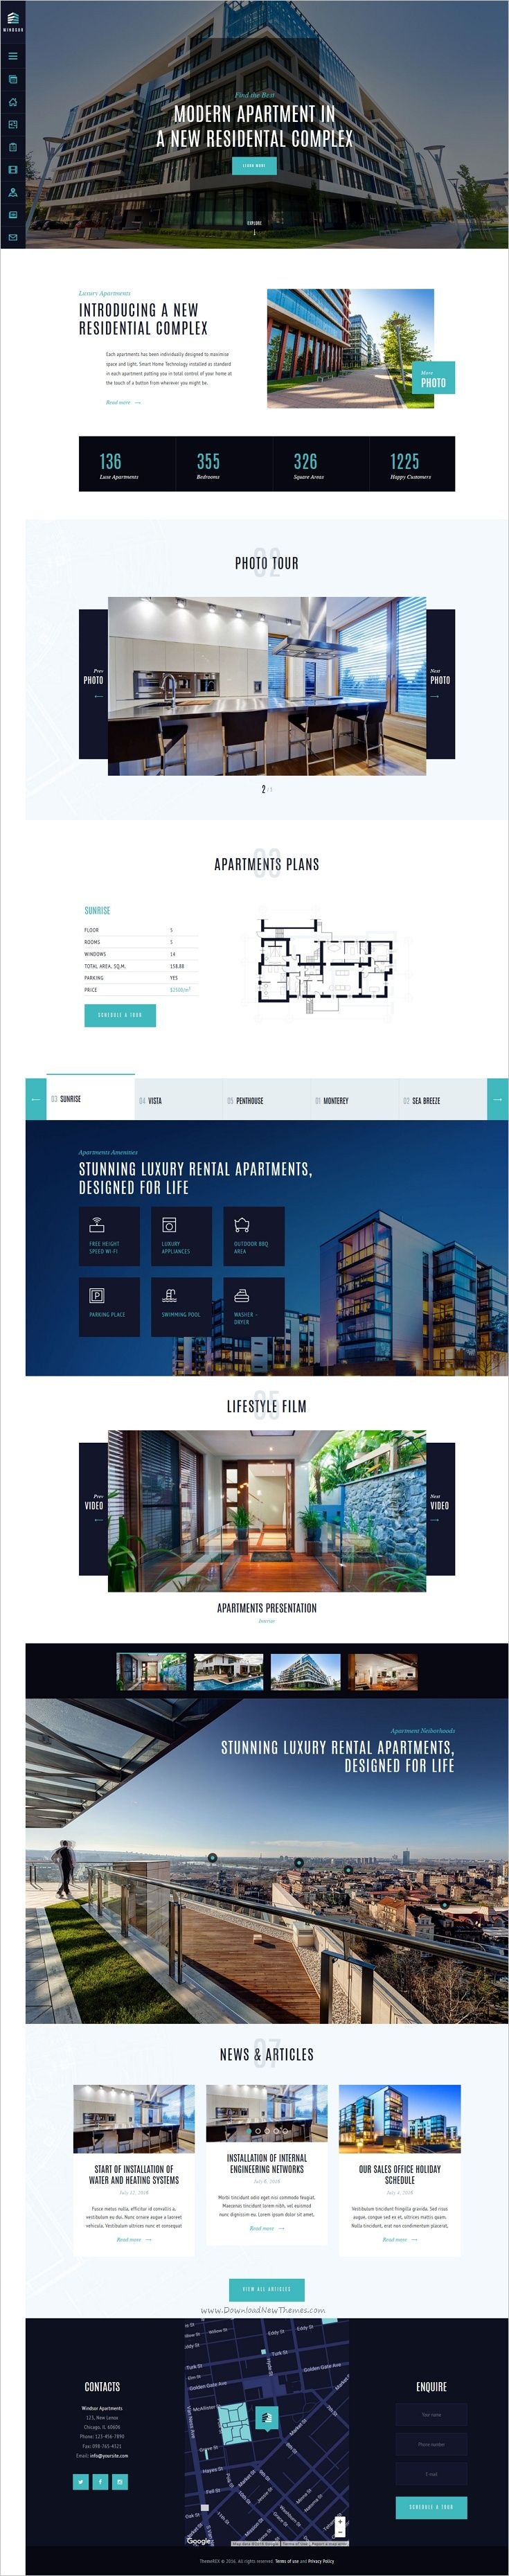 Windsor is a wonderful responsive #HTML theme splendid solution for #realestate agencies online presentation of a newly built #apartment complex, office center or a house websites download now➩ https://themeforest.net/item/windsor-apartment-complex-single-property-site-template/18939023?ref=Datasata